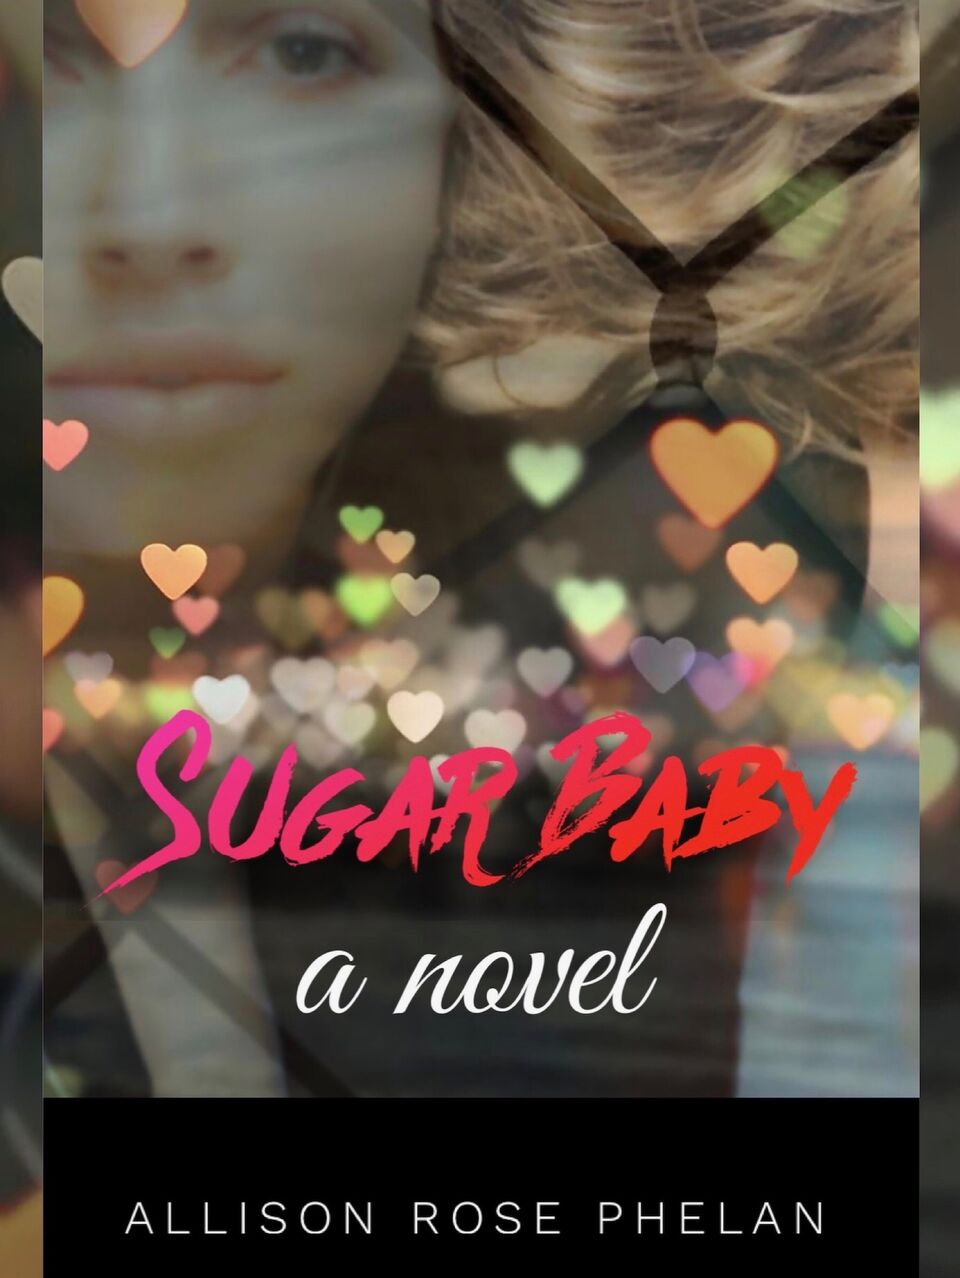 "Sugar Baby, A Novel is a steamy, dreamy, chilling, thrilling, gripping, romantic and wild ride through the exploits of a charming, cheeky, coquettish ""sugar baby"" who may or may not be a deadly serial killer."